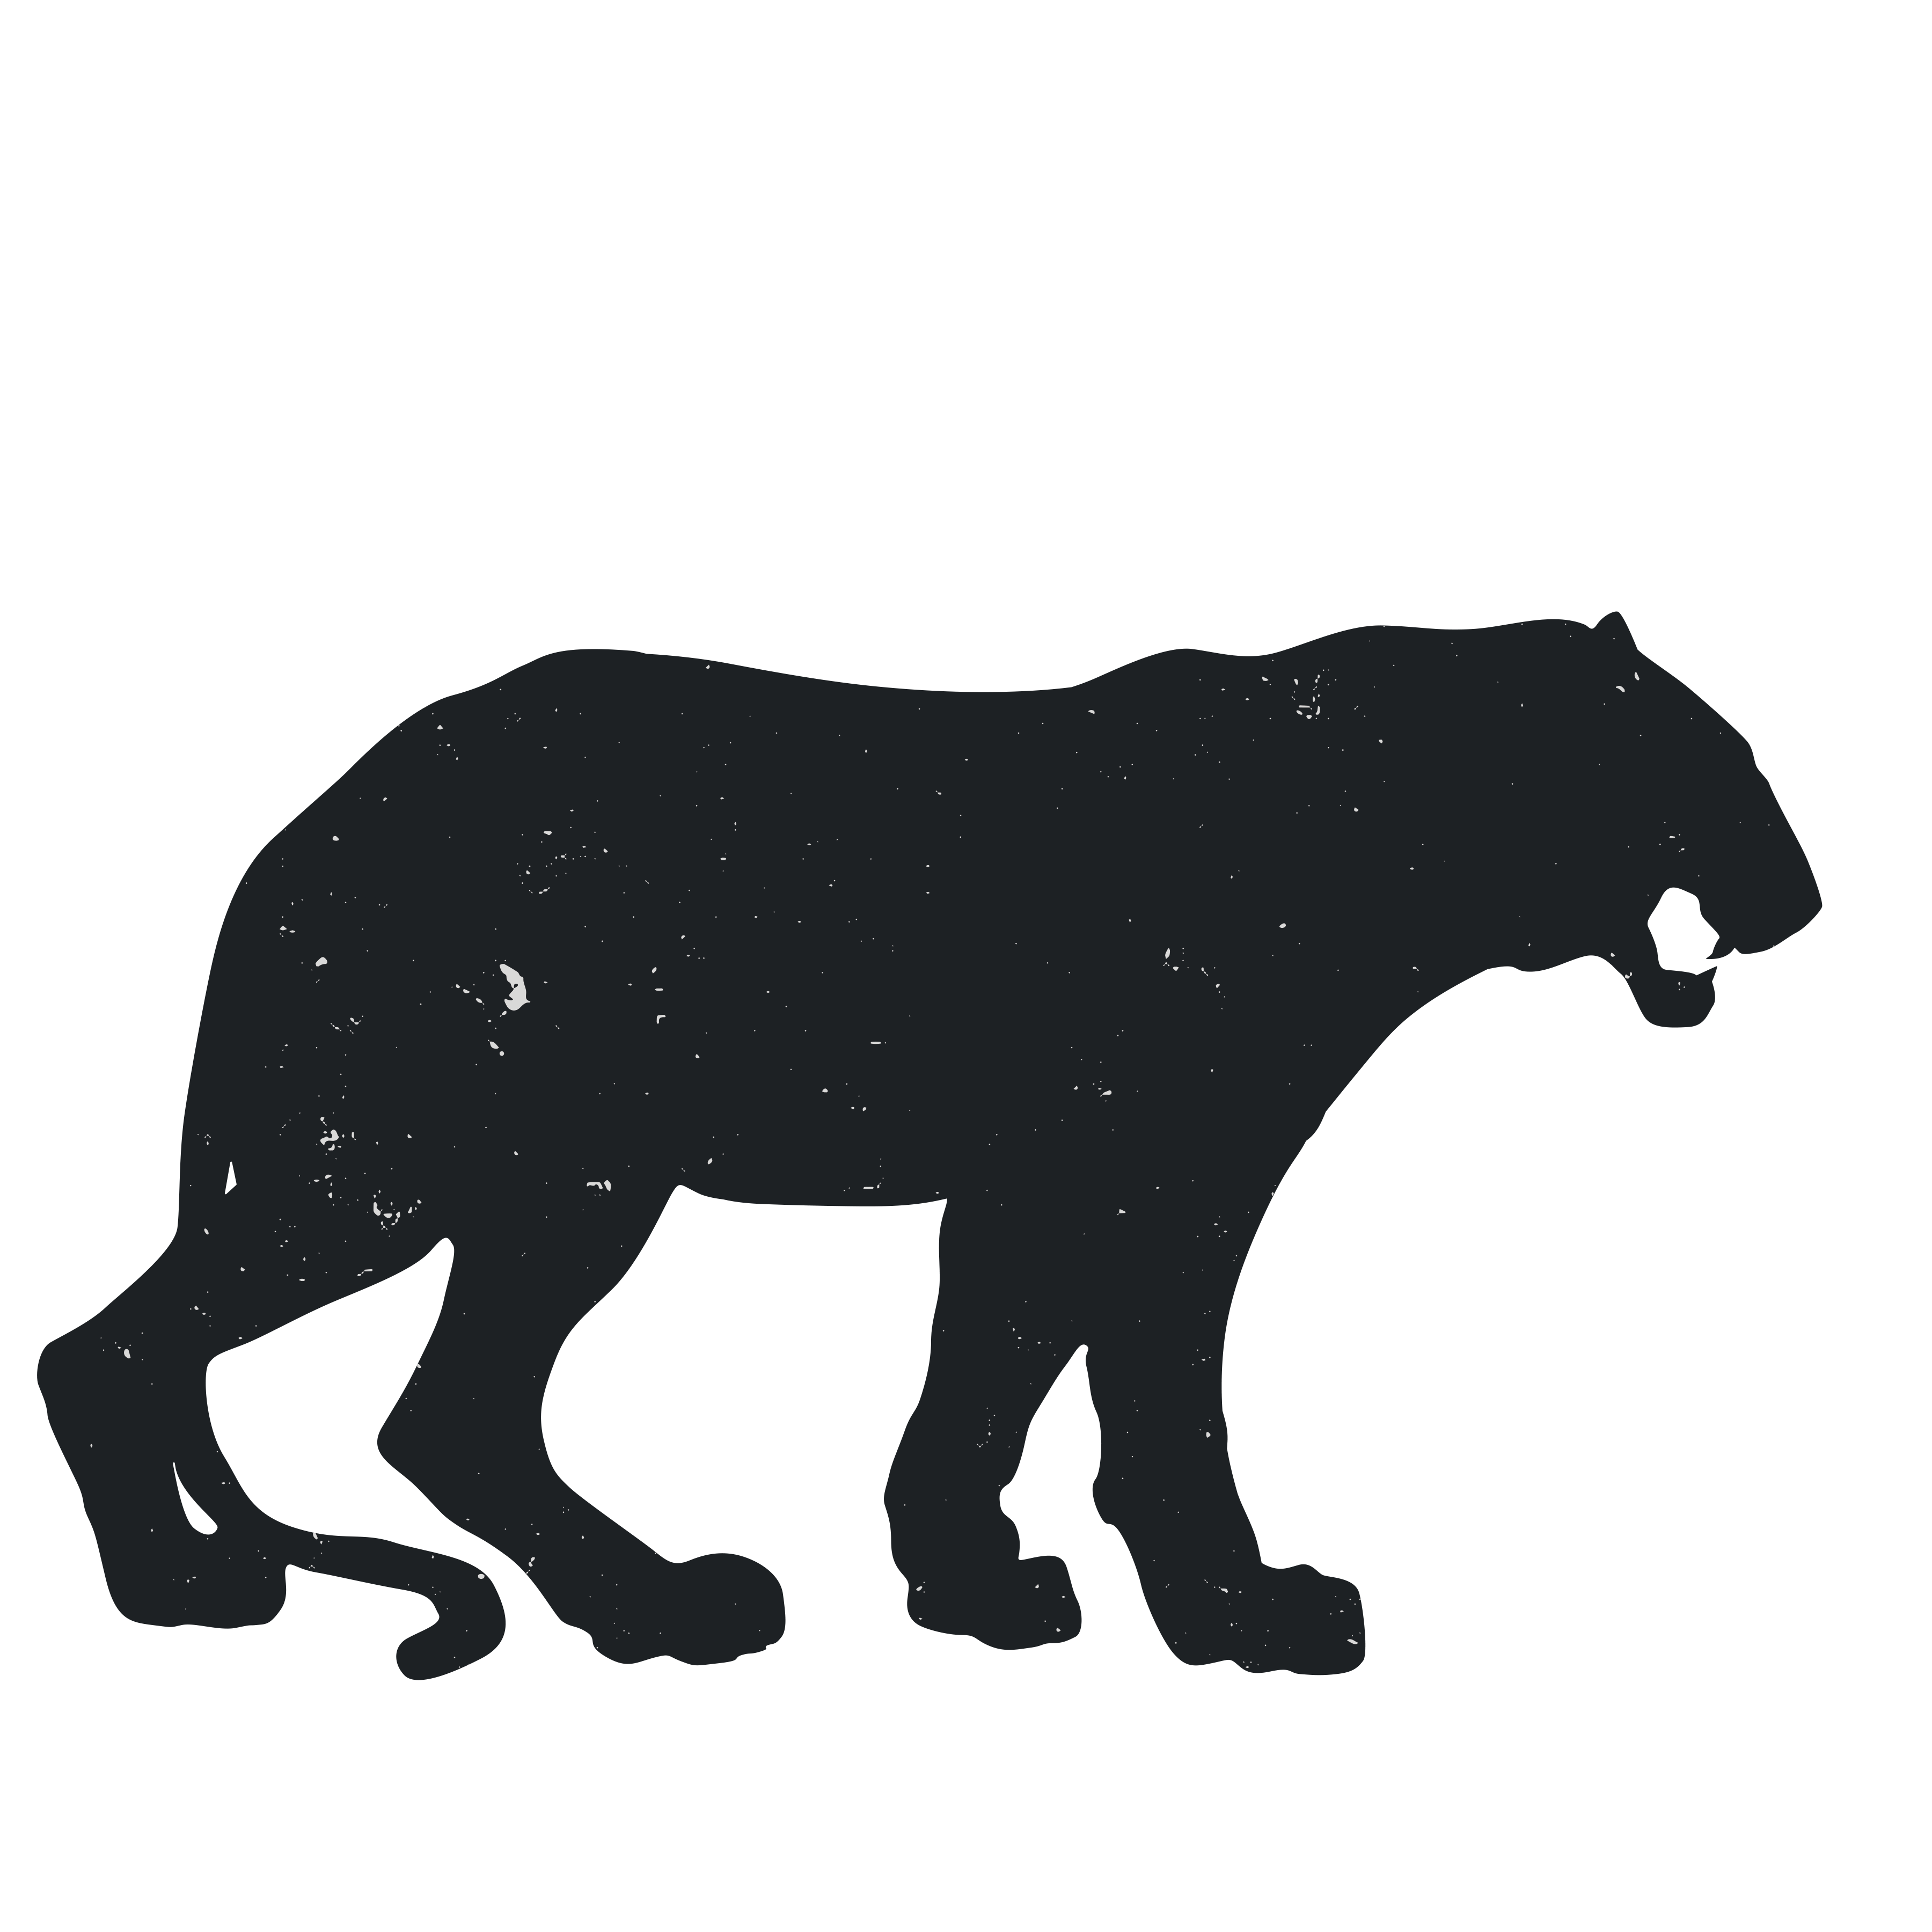 Attacking cat clipart image download Tiger Silhouette Images at GetDrawings.com | Free for personal use ... image download